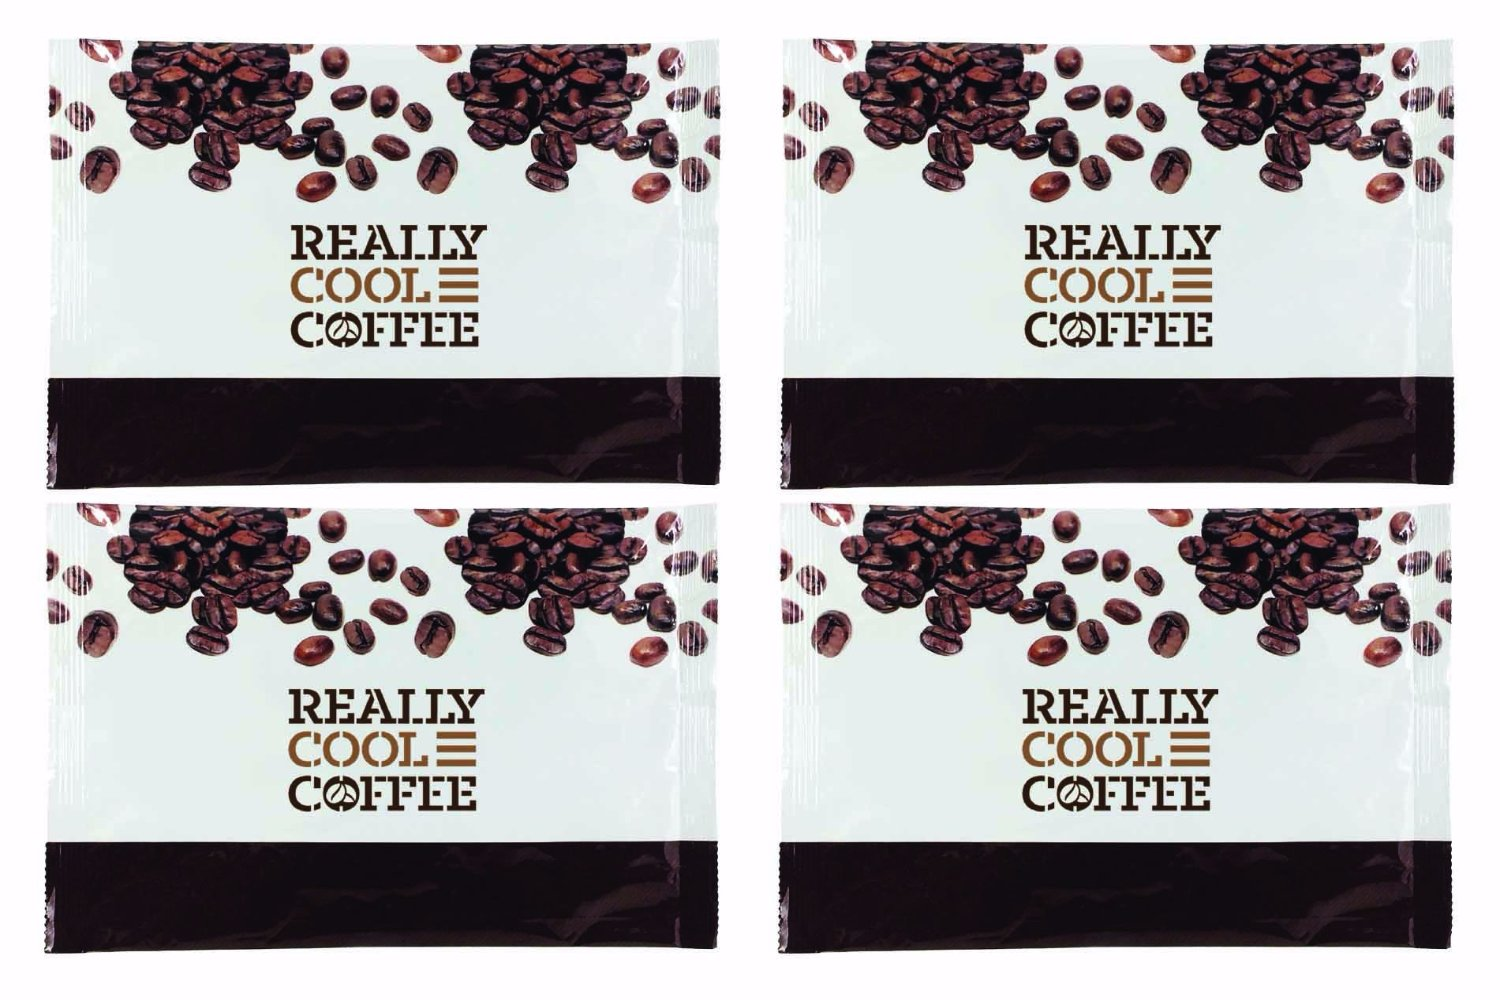 FOUR STAY FRESH FOIL POUCHES CONTAIN SIXTEEN FILTER BAGS OF REALLY COOL COFFEE